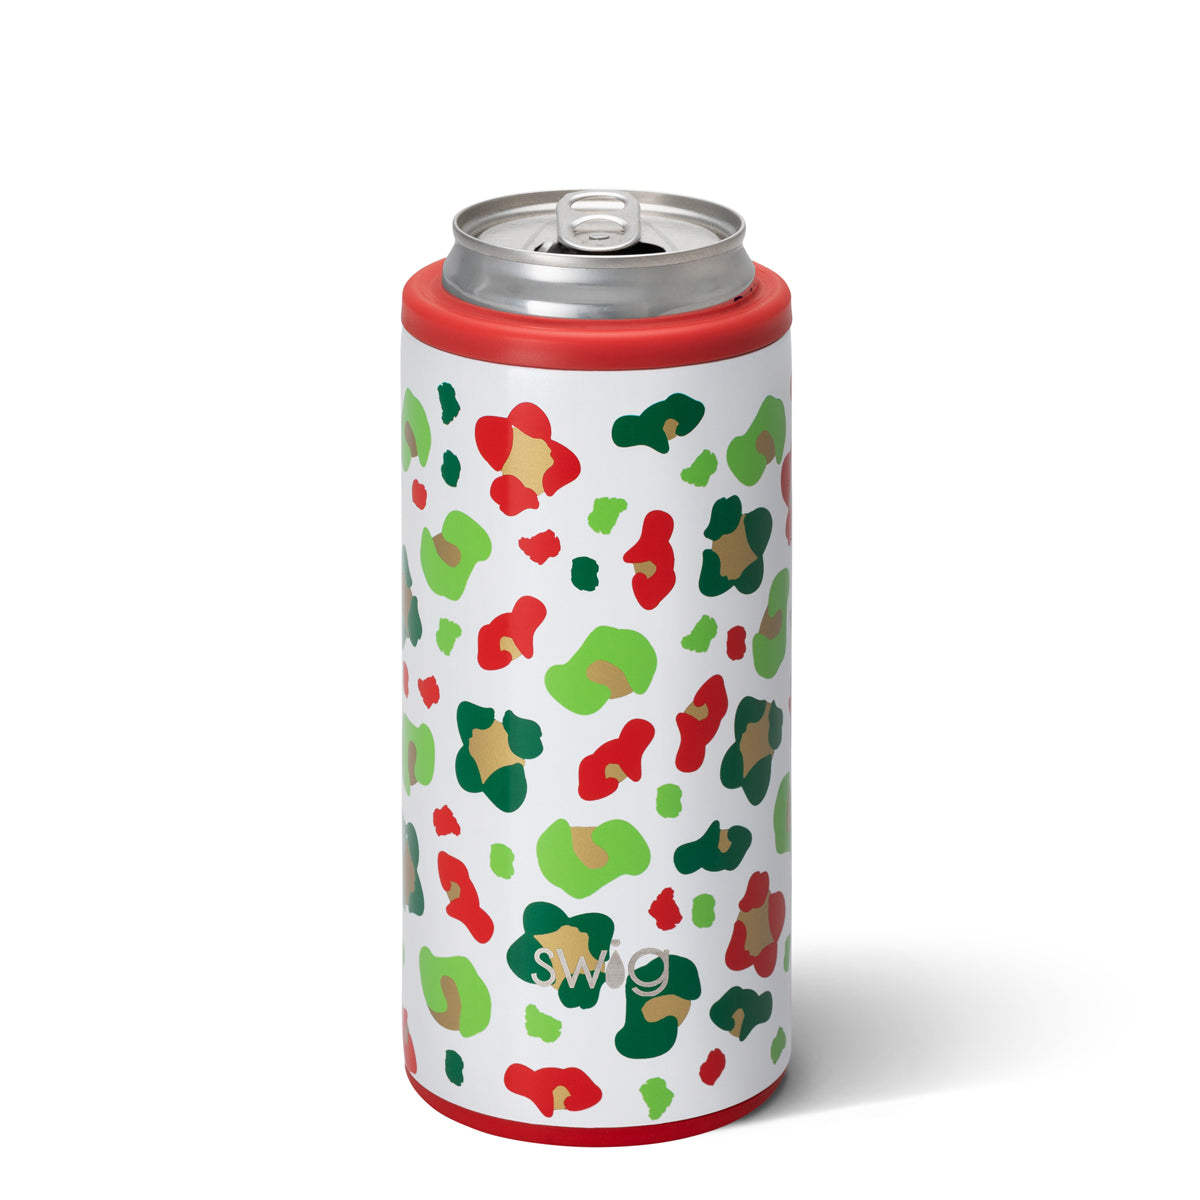 Swig 12oz Can Cooler Jingle Jungle